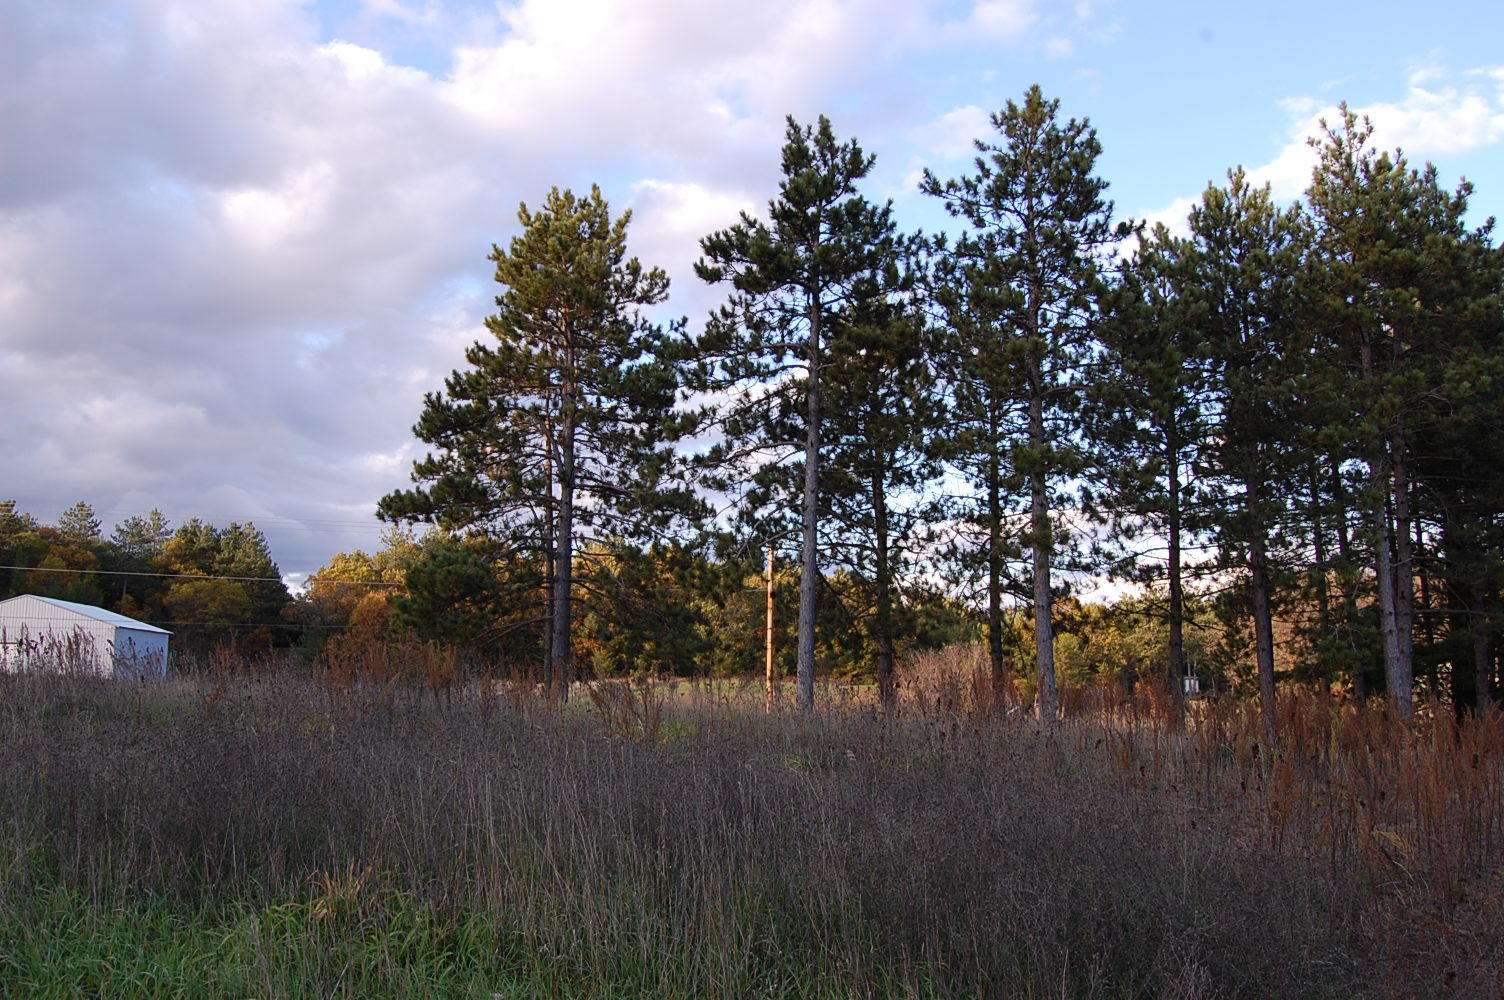 Easy to Build Your Dream Home on this Wisconsin Lot - Image 4